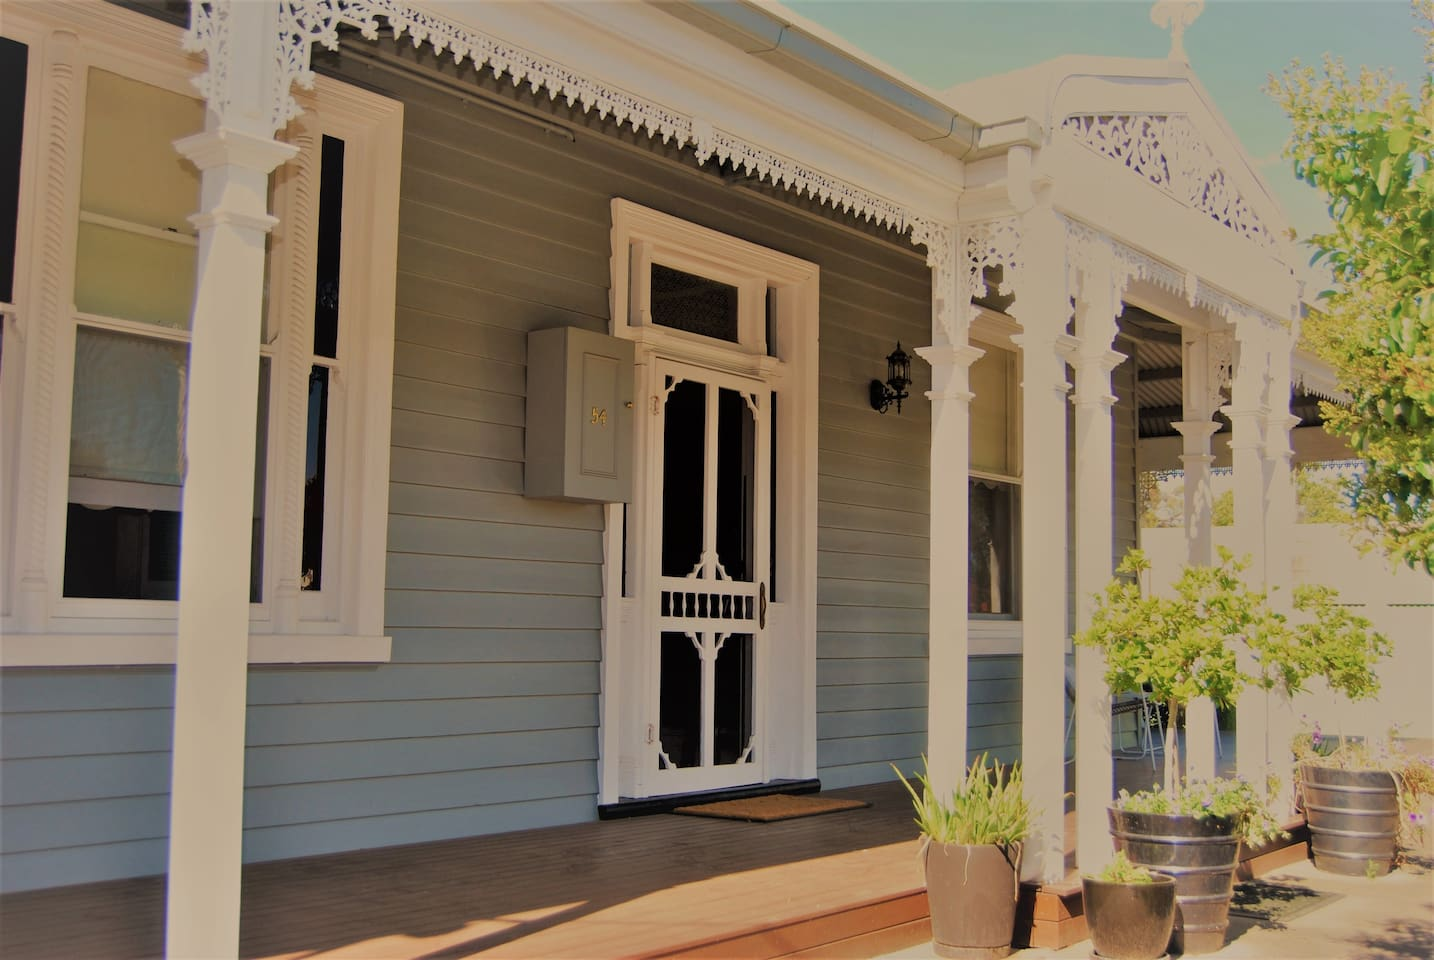 Our lovely home - welcome! We are only a 5 minute walk to the CBD.